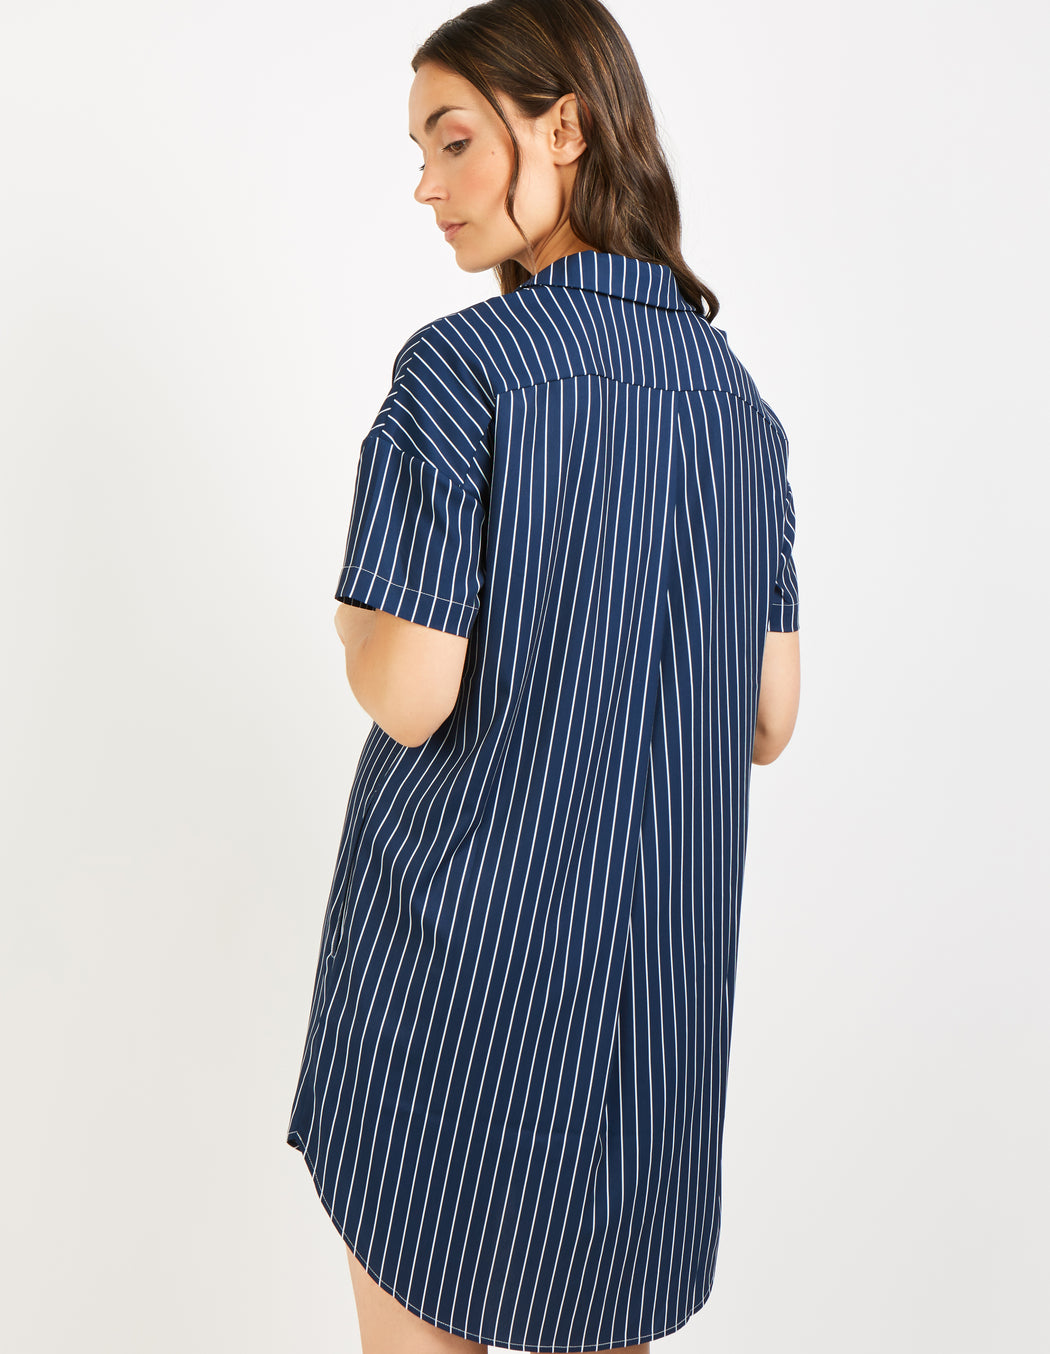 PIN STRIPE SAIL||PIN STRIPE SAIL